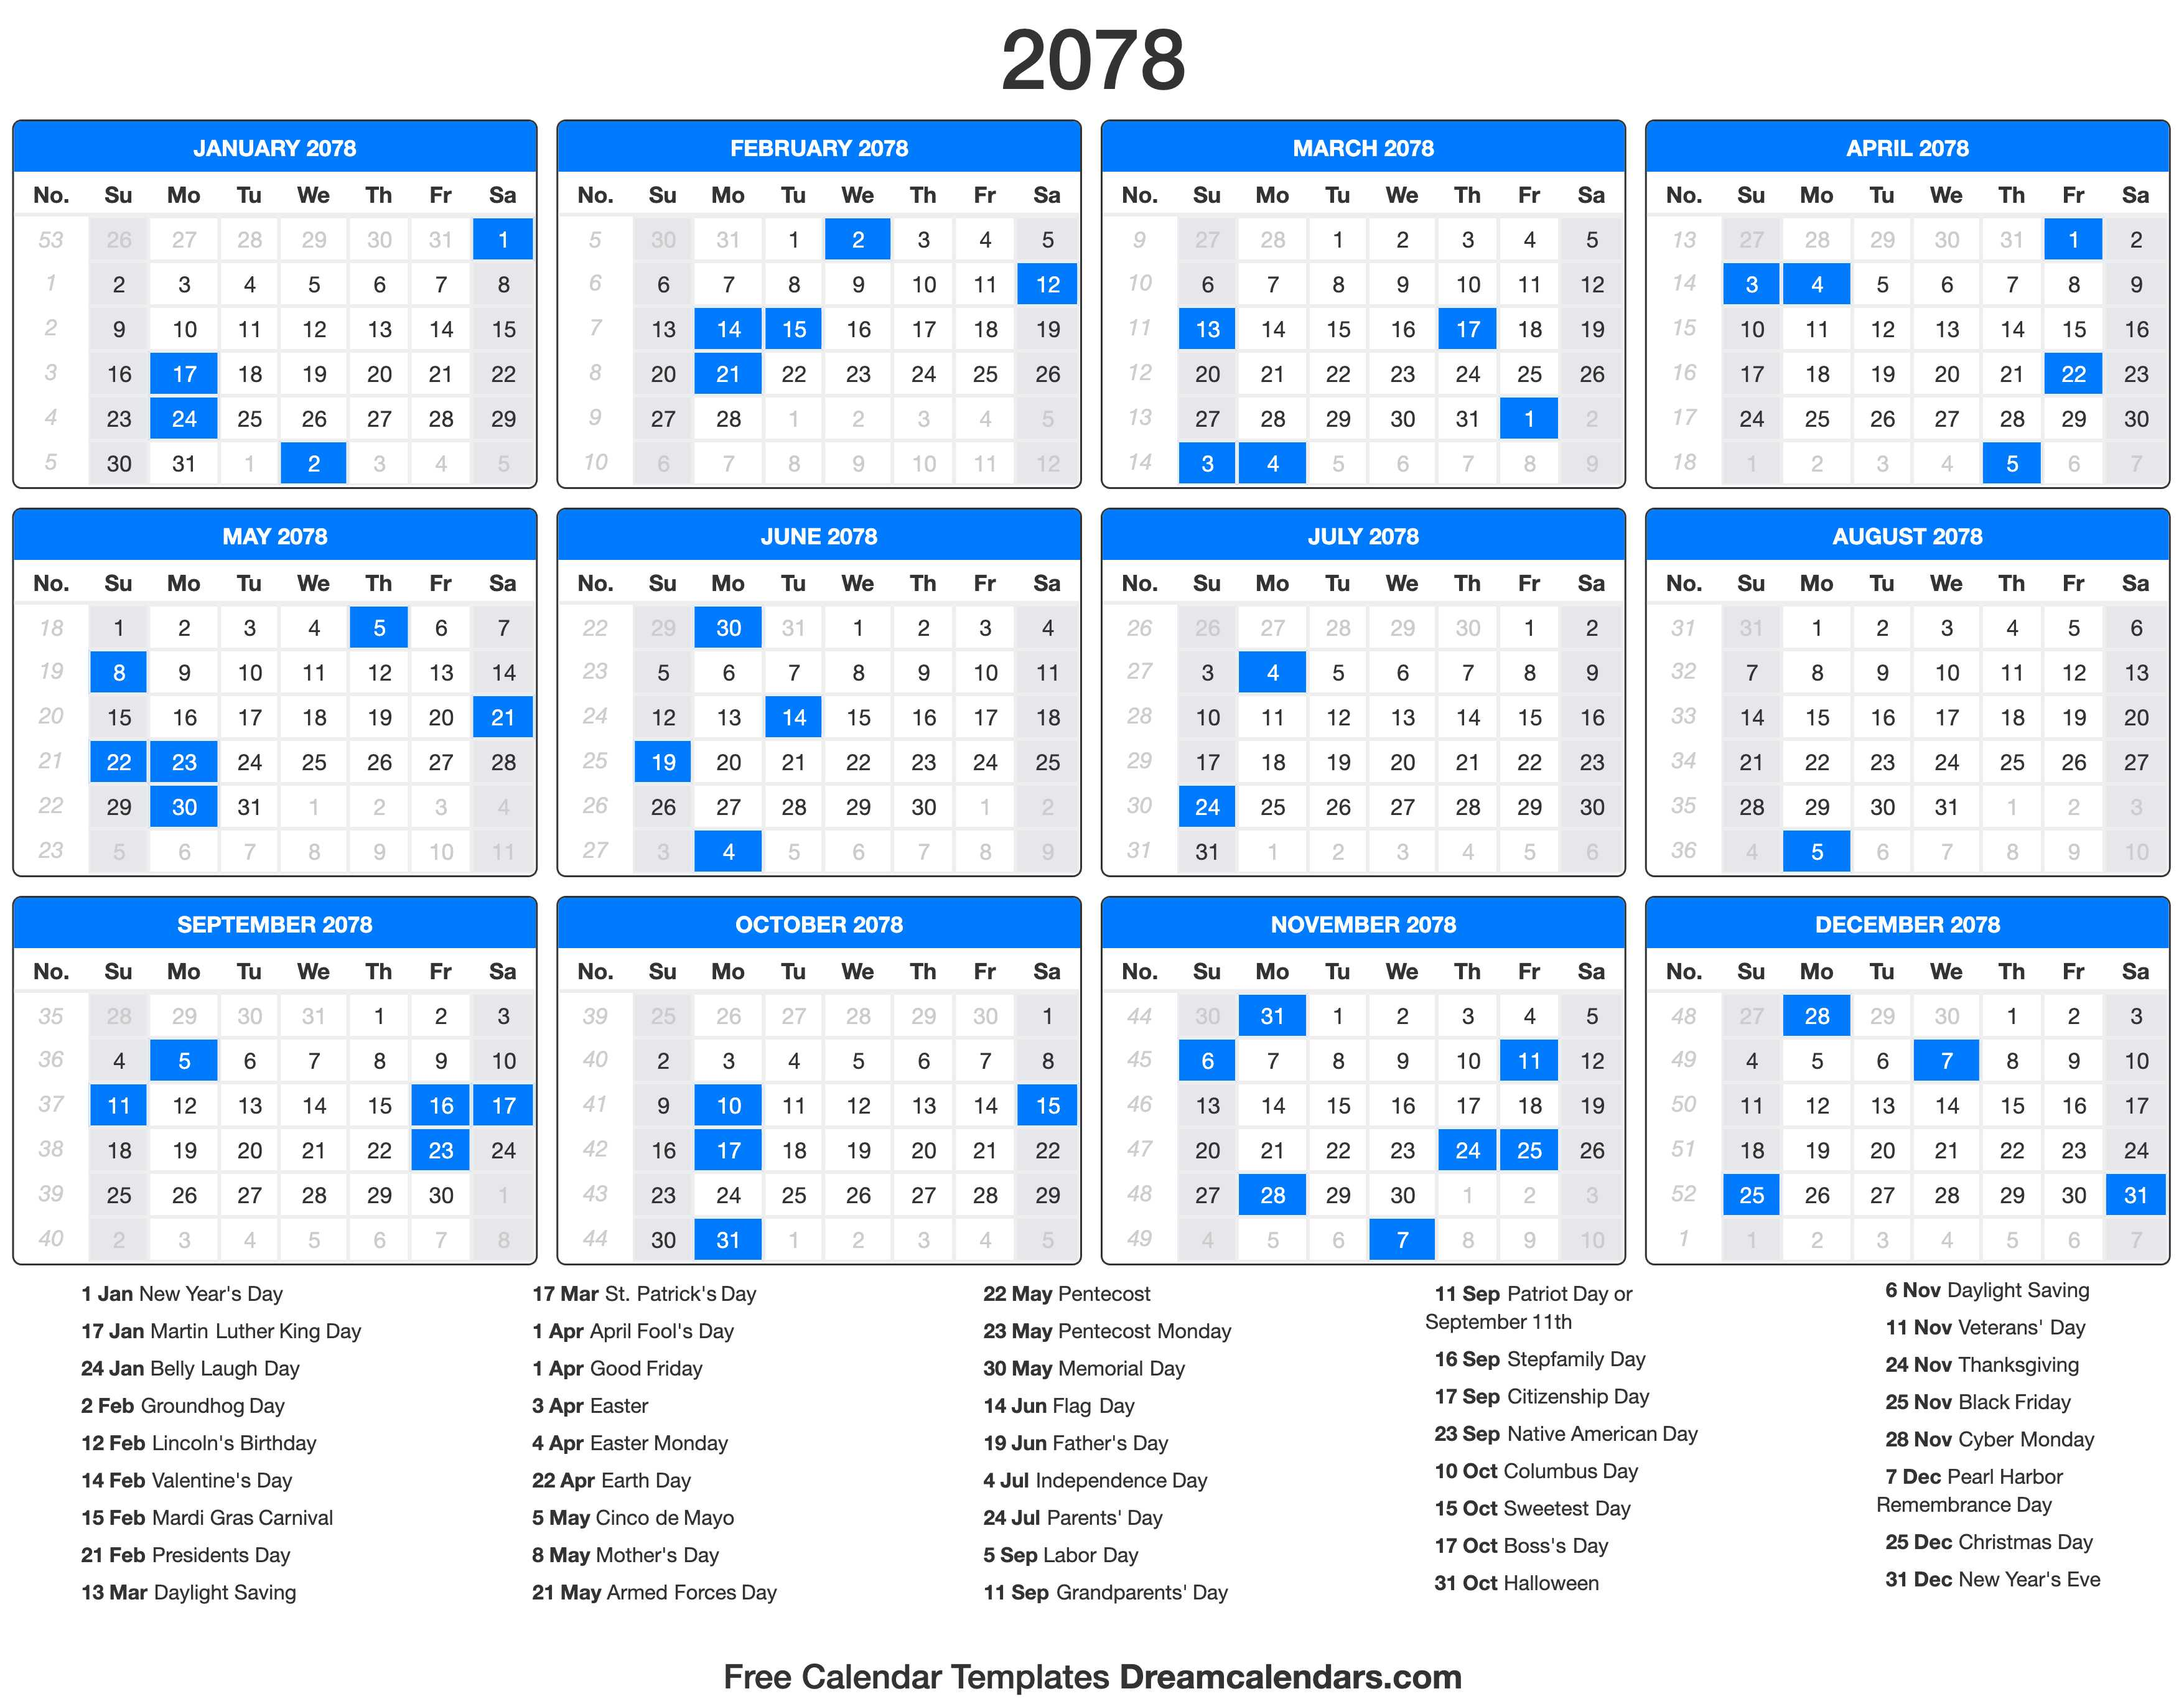 2078 Calendar with holidays